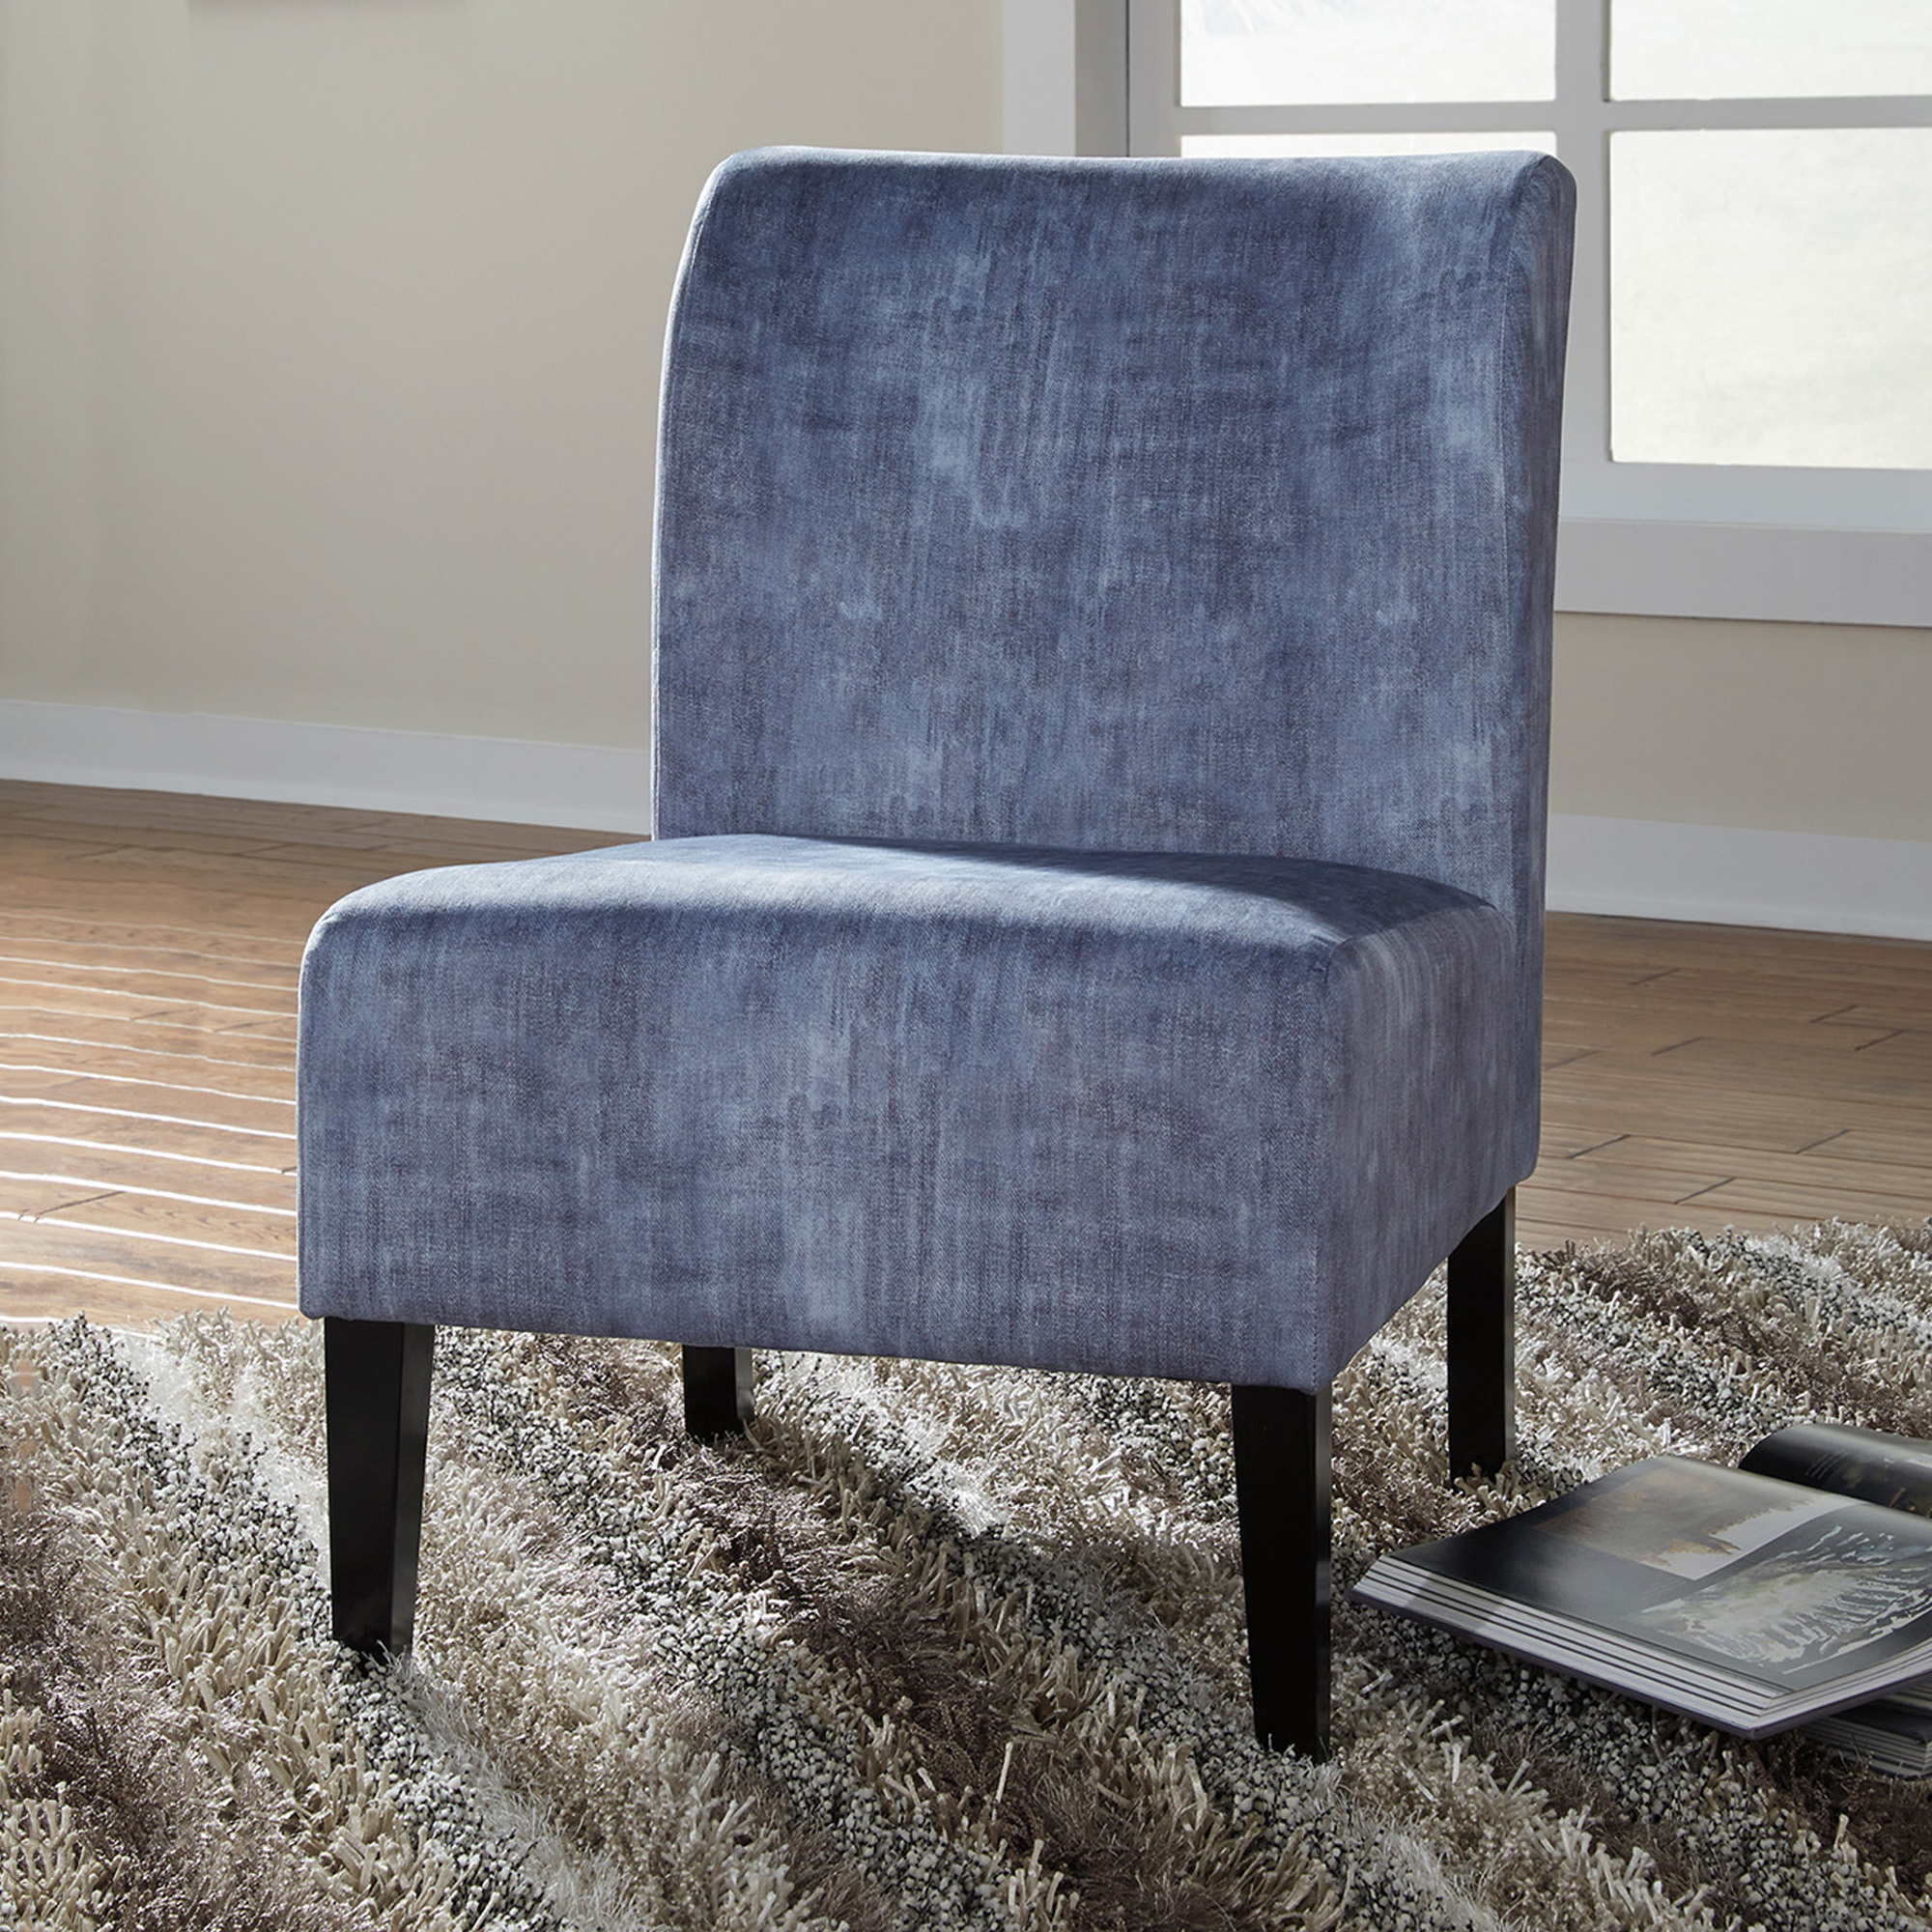 Caldwell Armchairs Within Most Up To Date Washed Denim Caldwell Accent Chair (View 5 of 20)